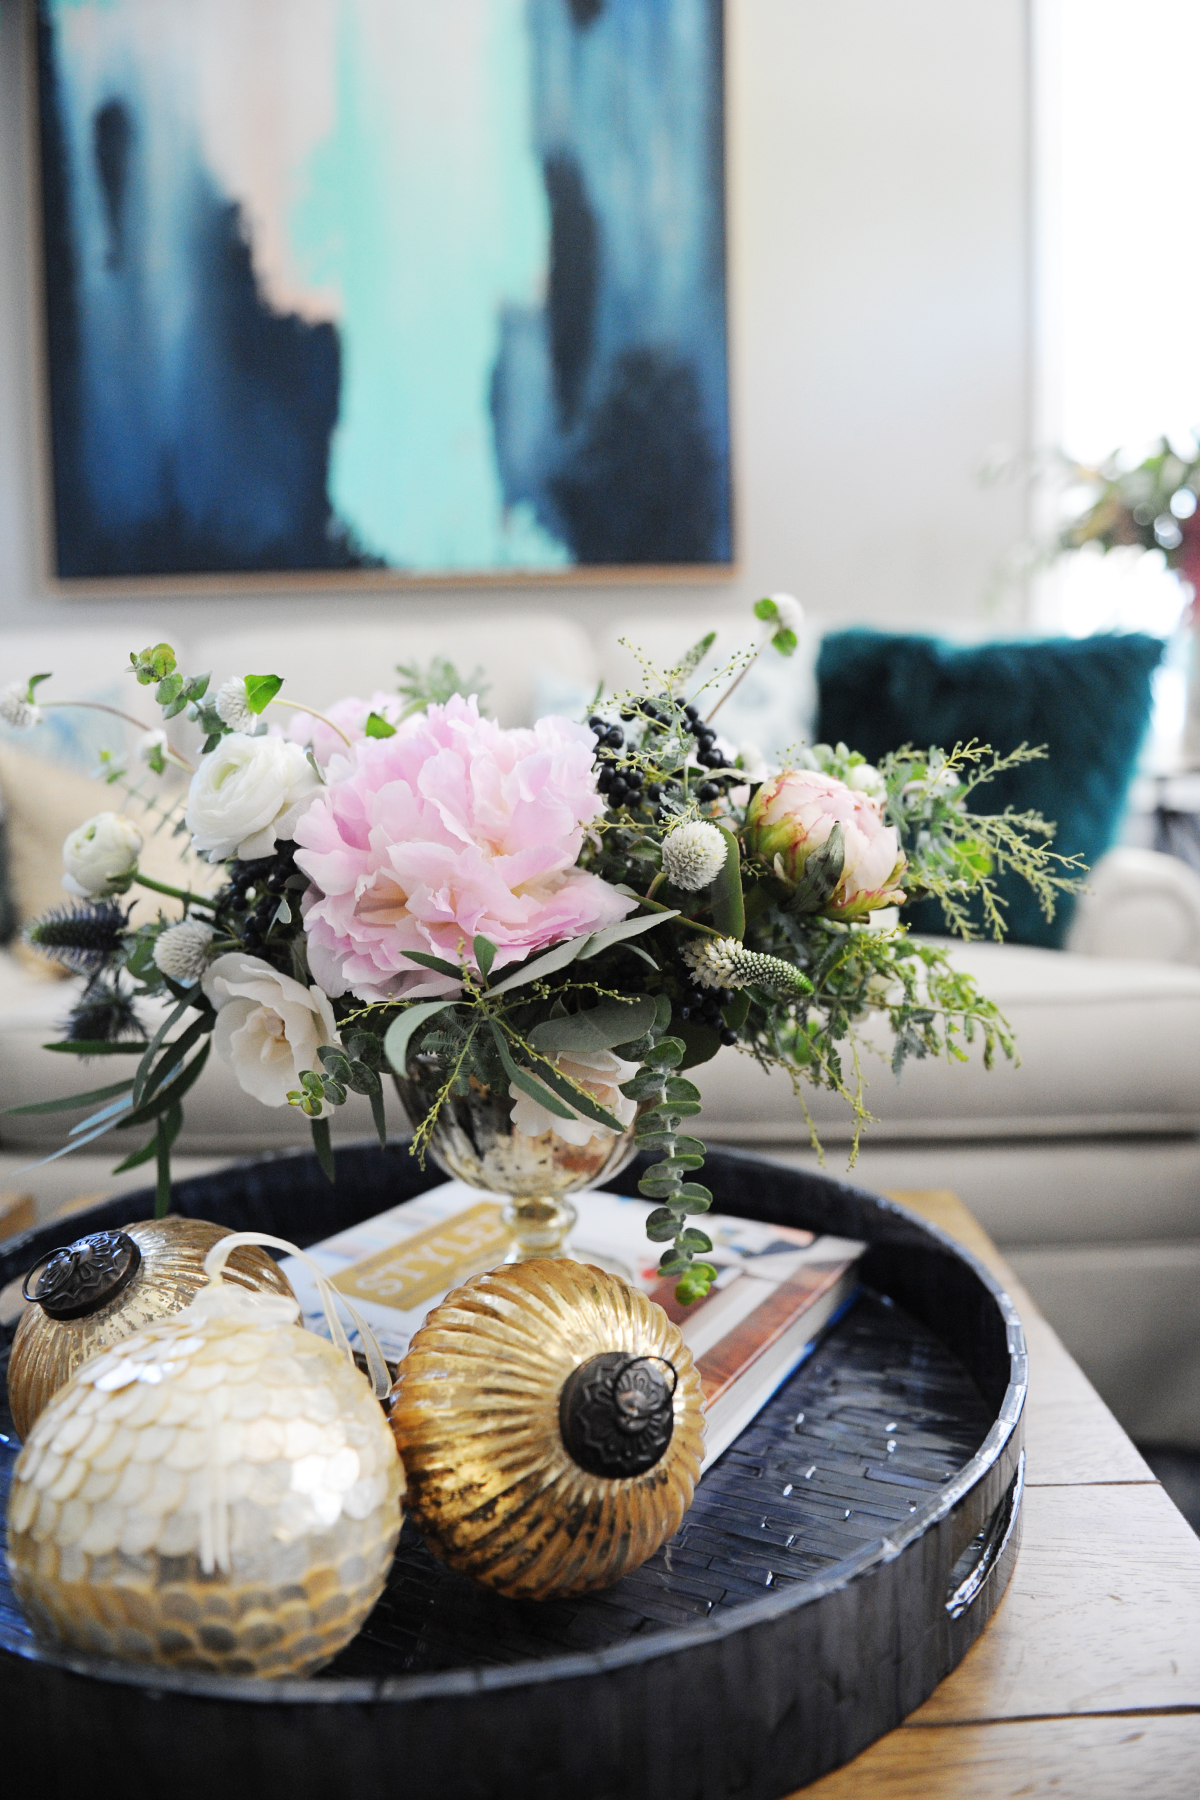 Our Christmas Home – Christmas Home Decor Inspiration Shoot